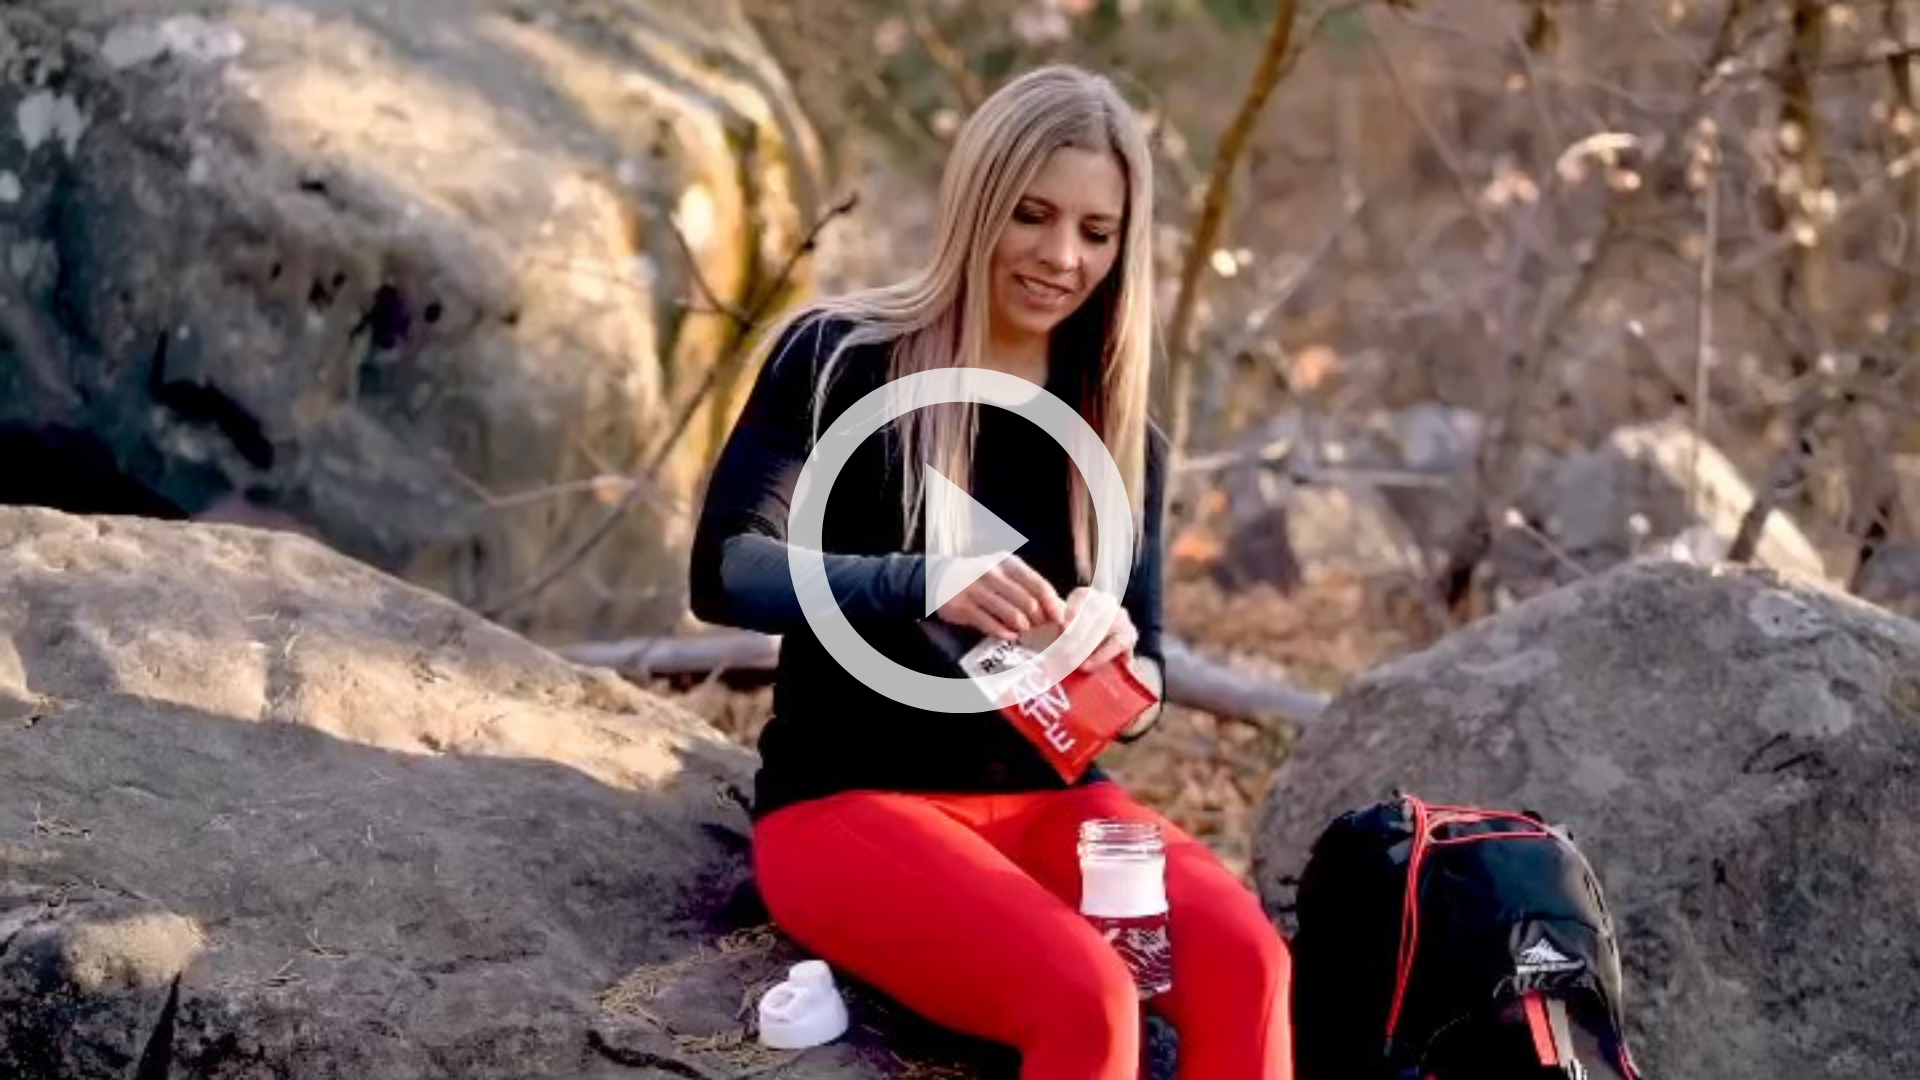 Tedi Searle the endorphin junkie backpacking in the mountains with Ruvi